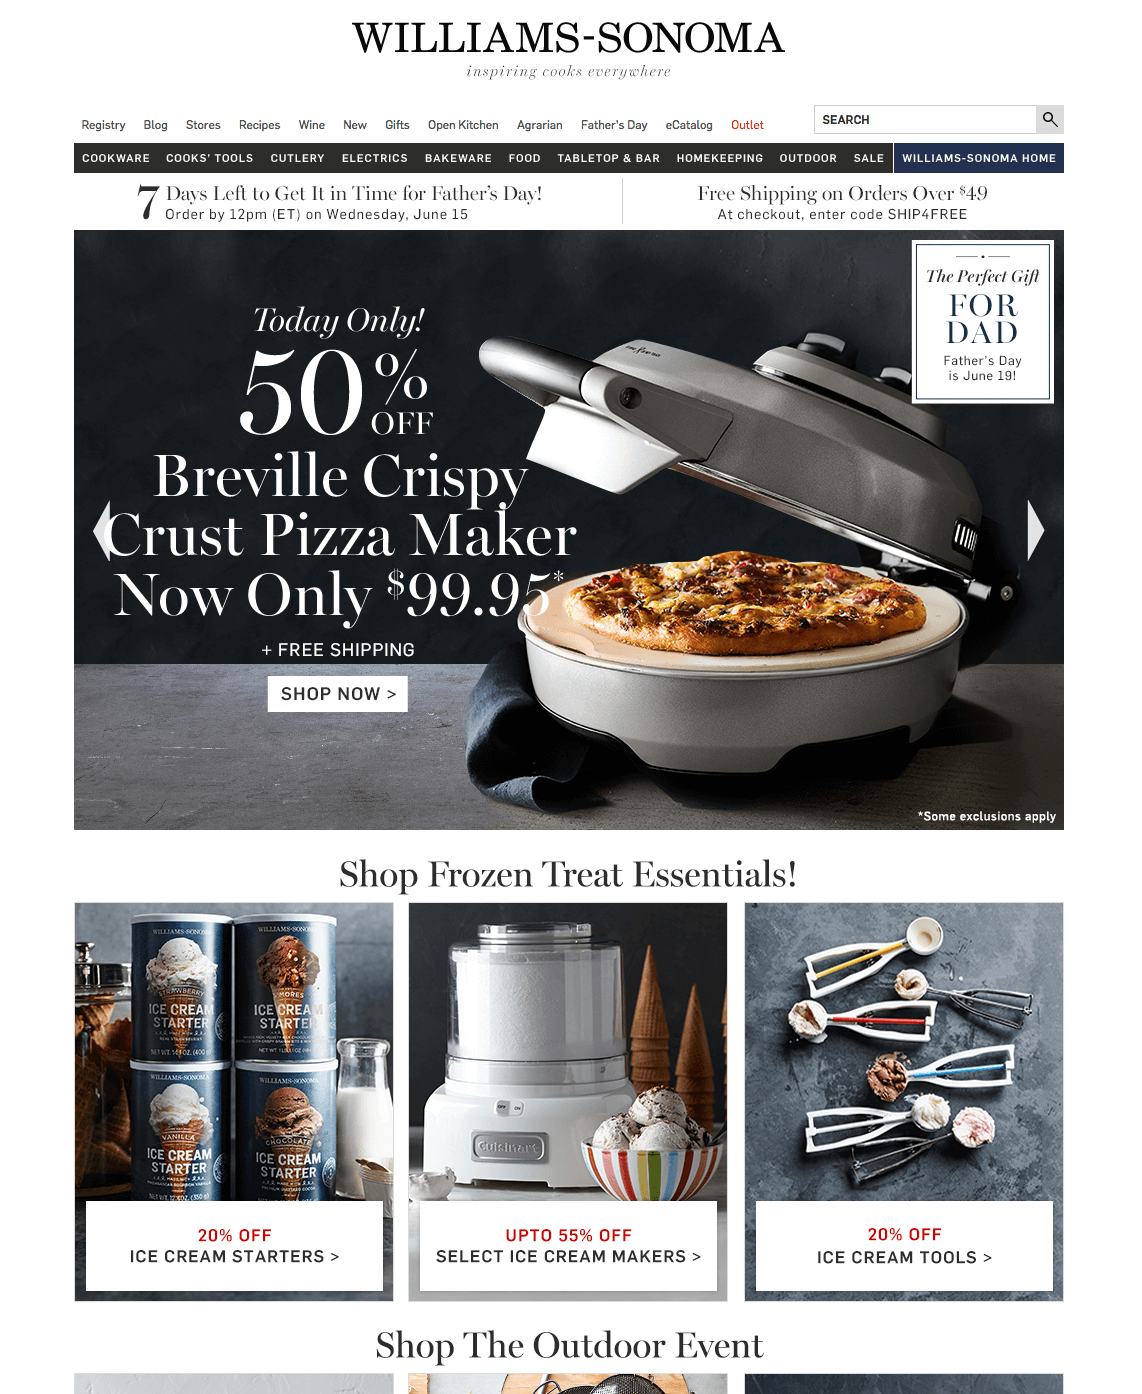 Example of cluttered text on carousel images by Williams-Sonoma